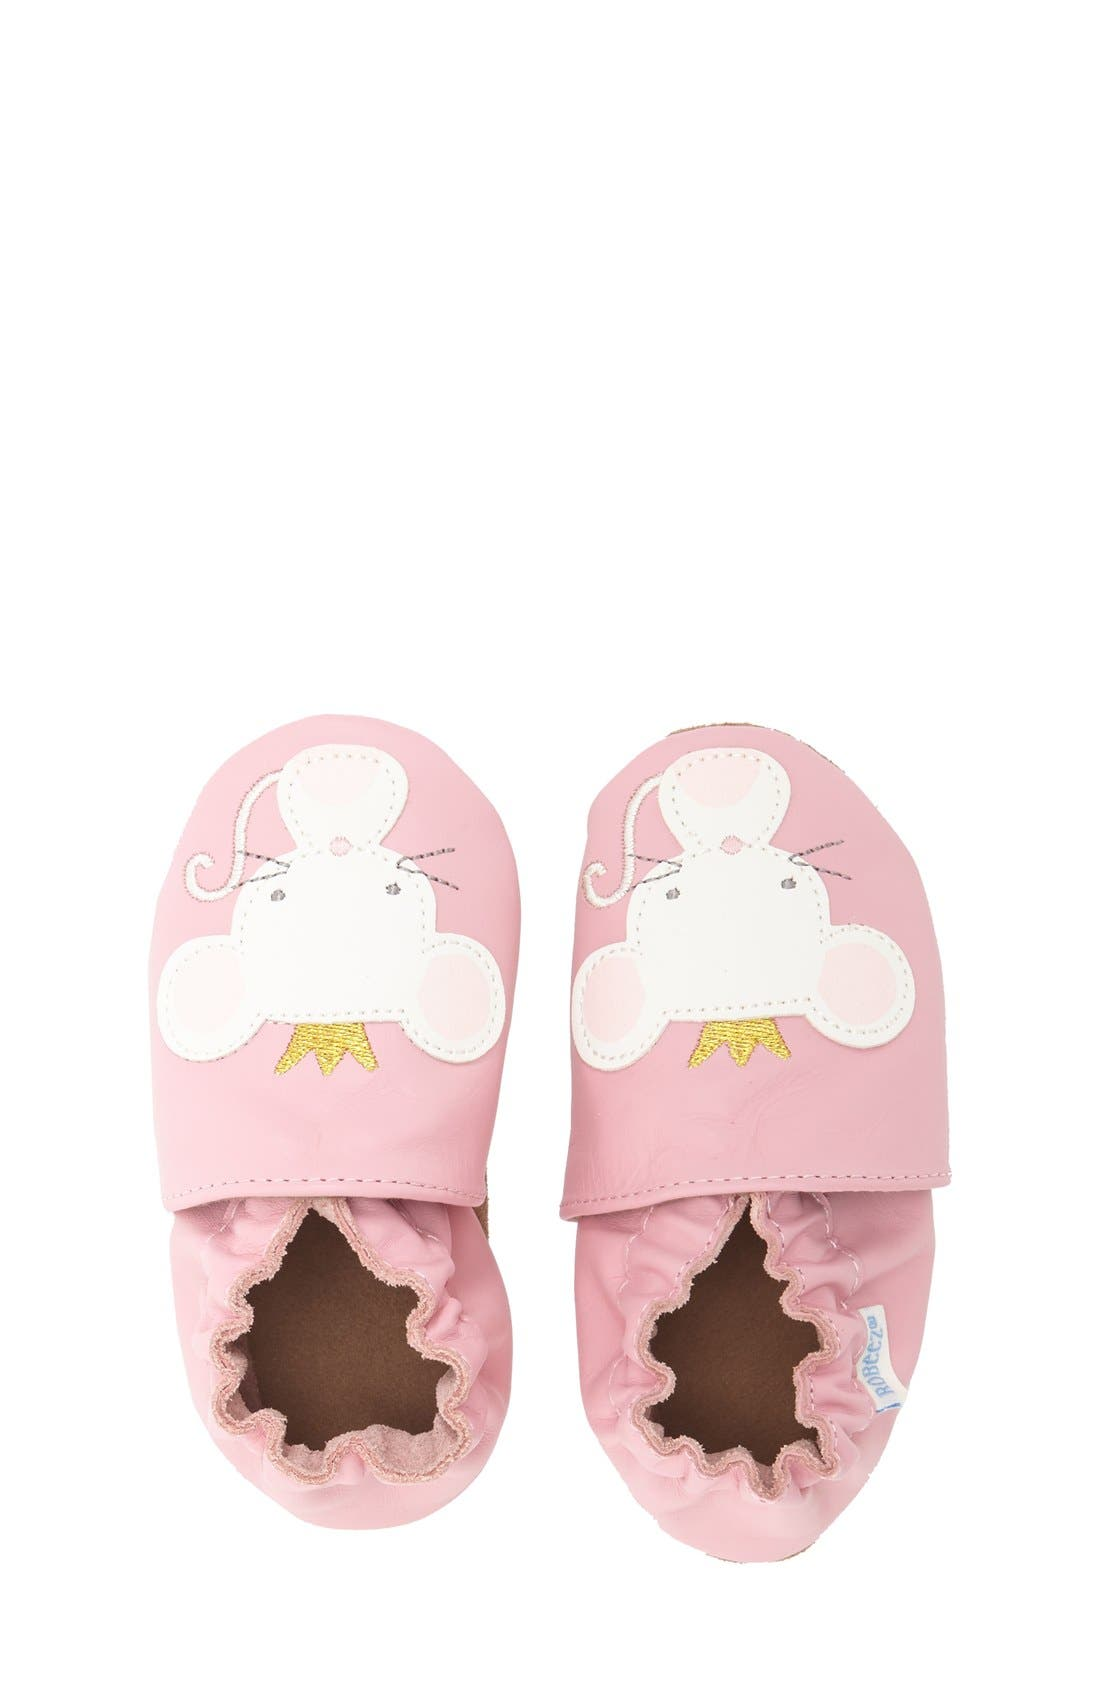 'Princess' Crib Shoe,                             Alternate thumbnail 3, color,                             650